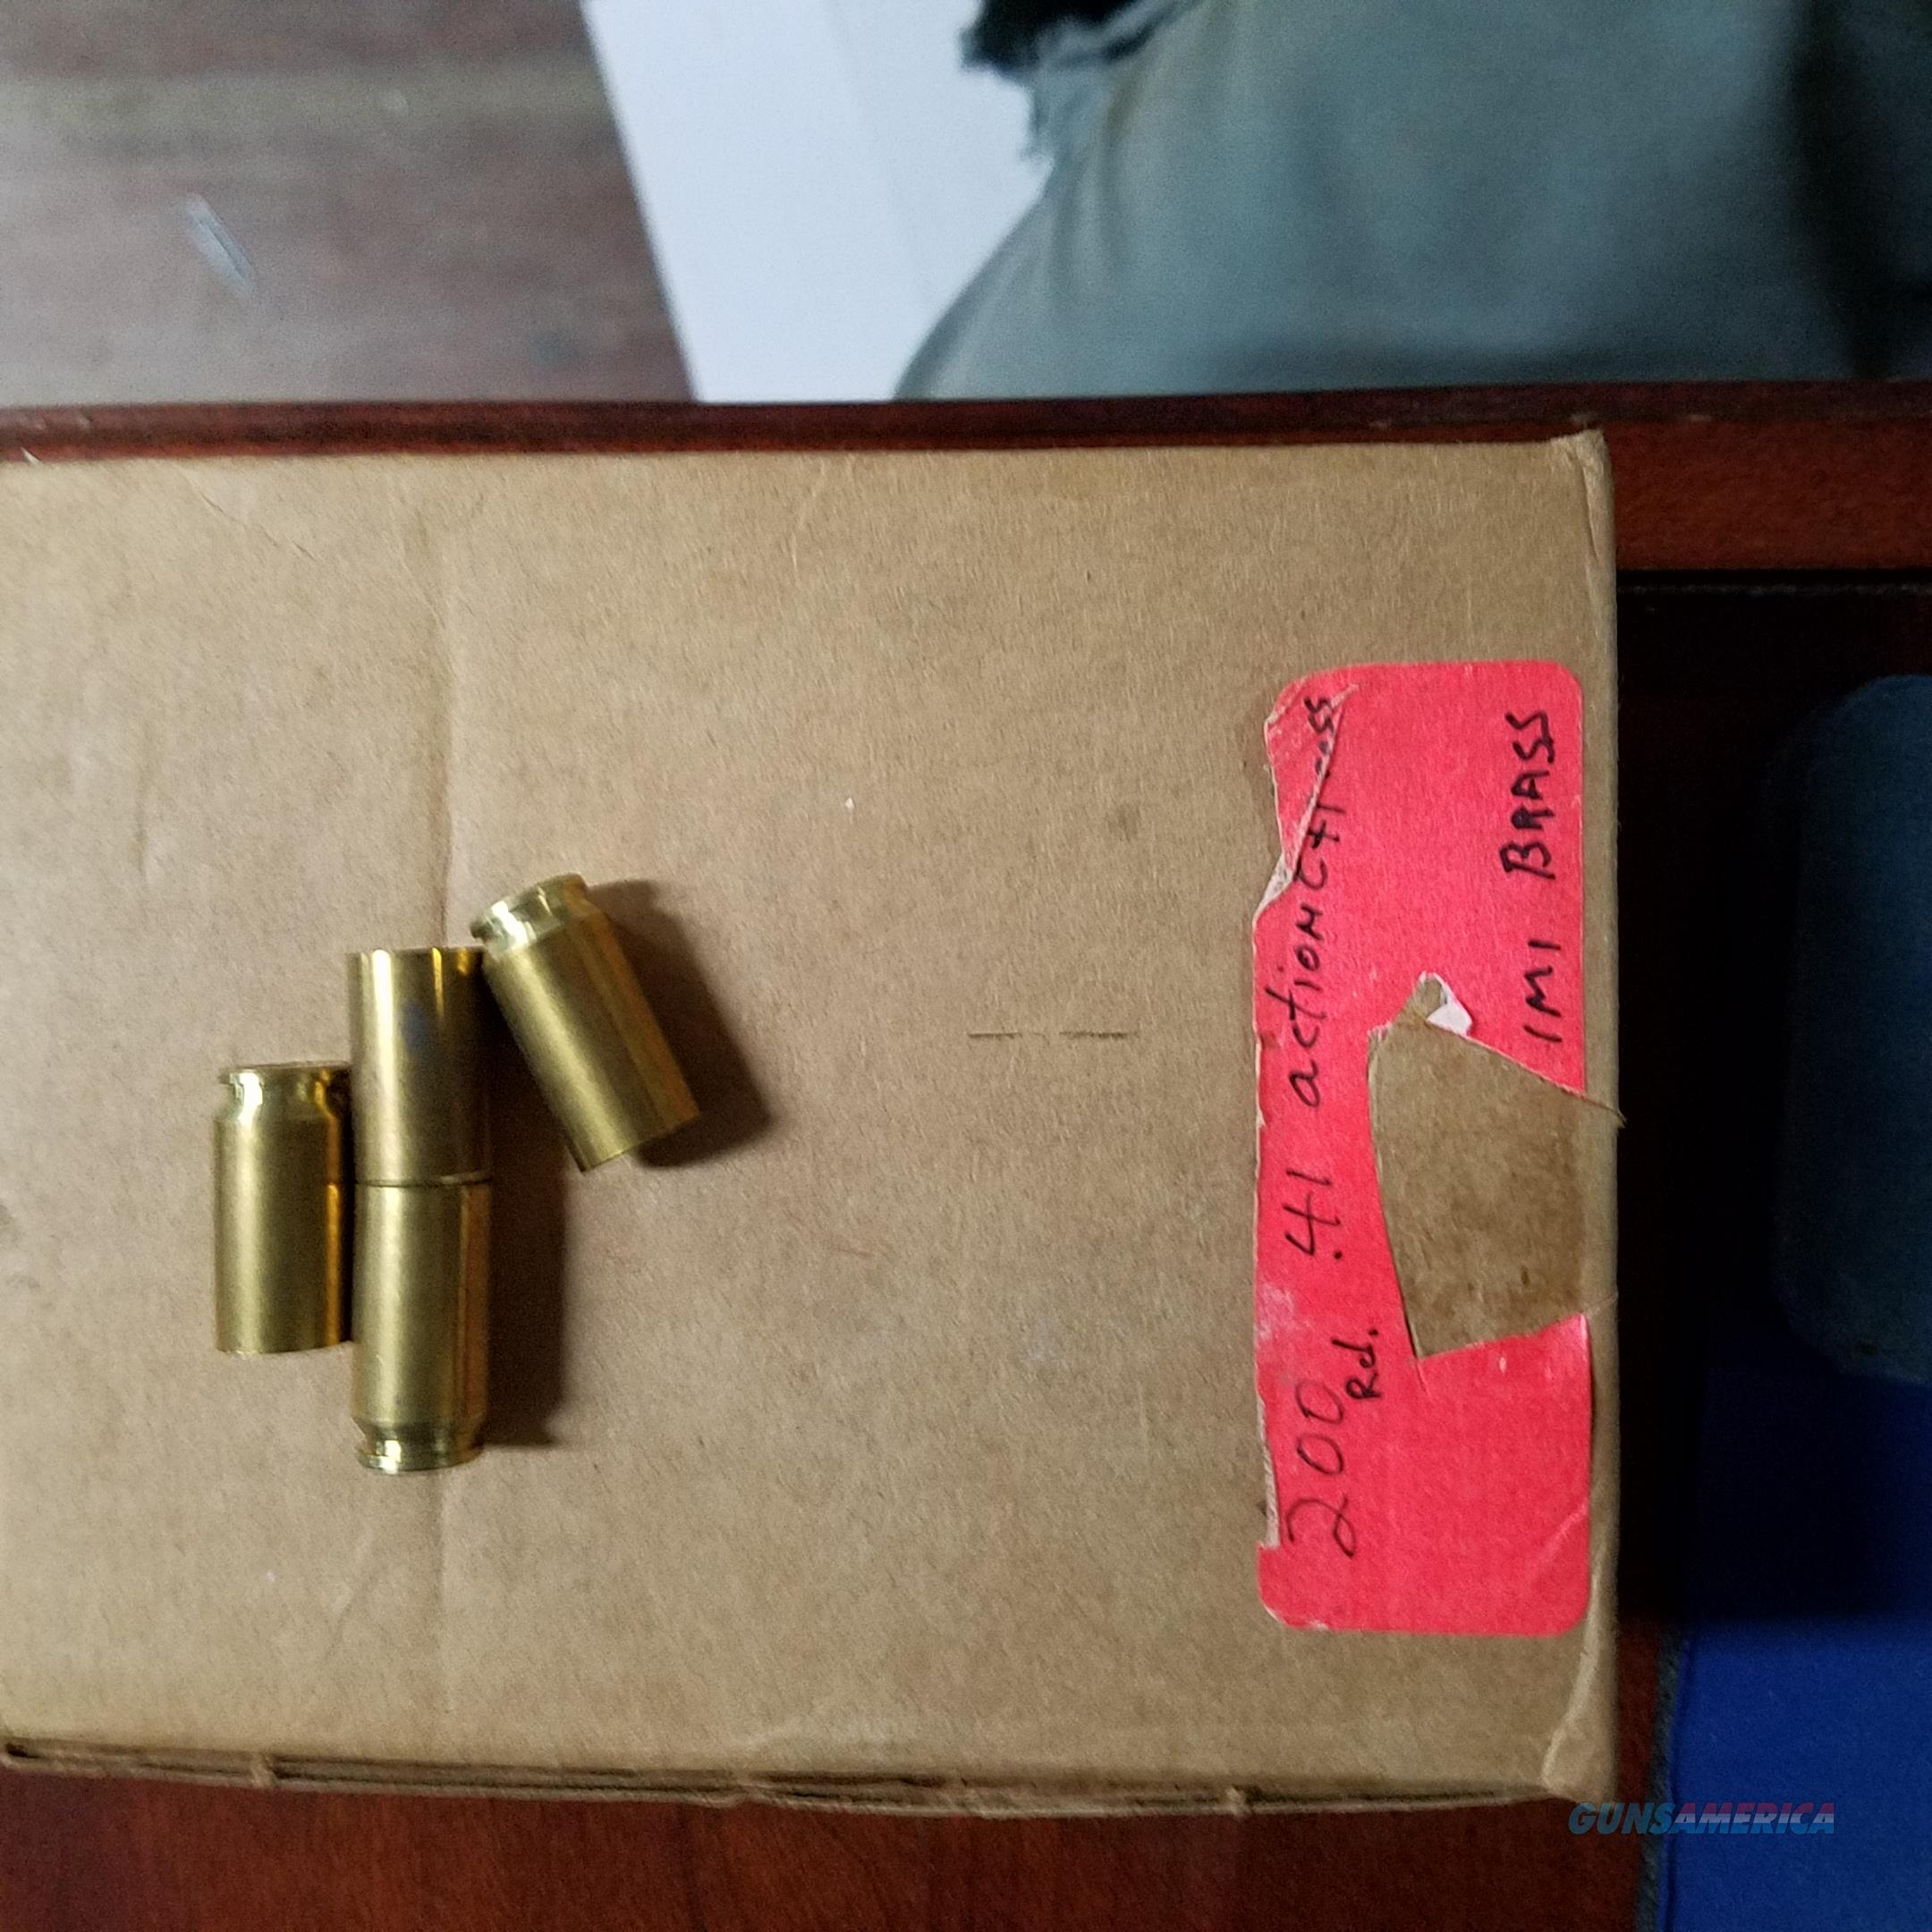 41 A&E Brass   Non-Guns > Bullet Making Supplies